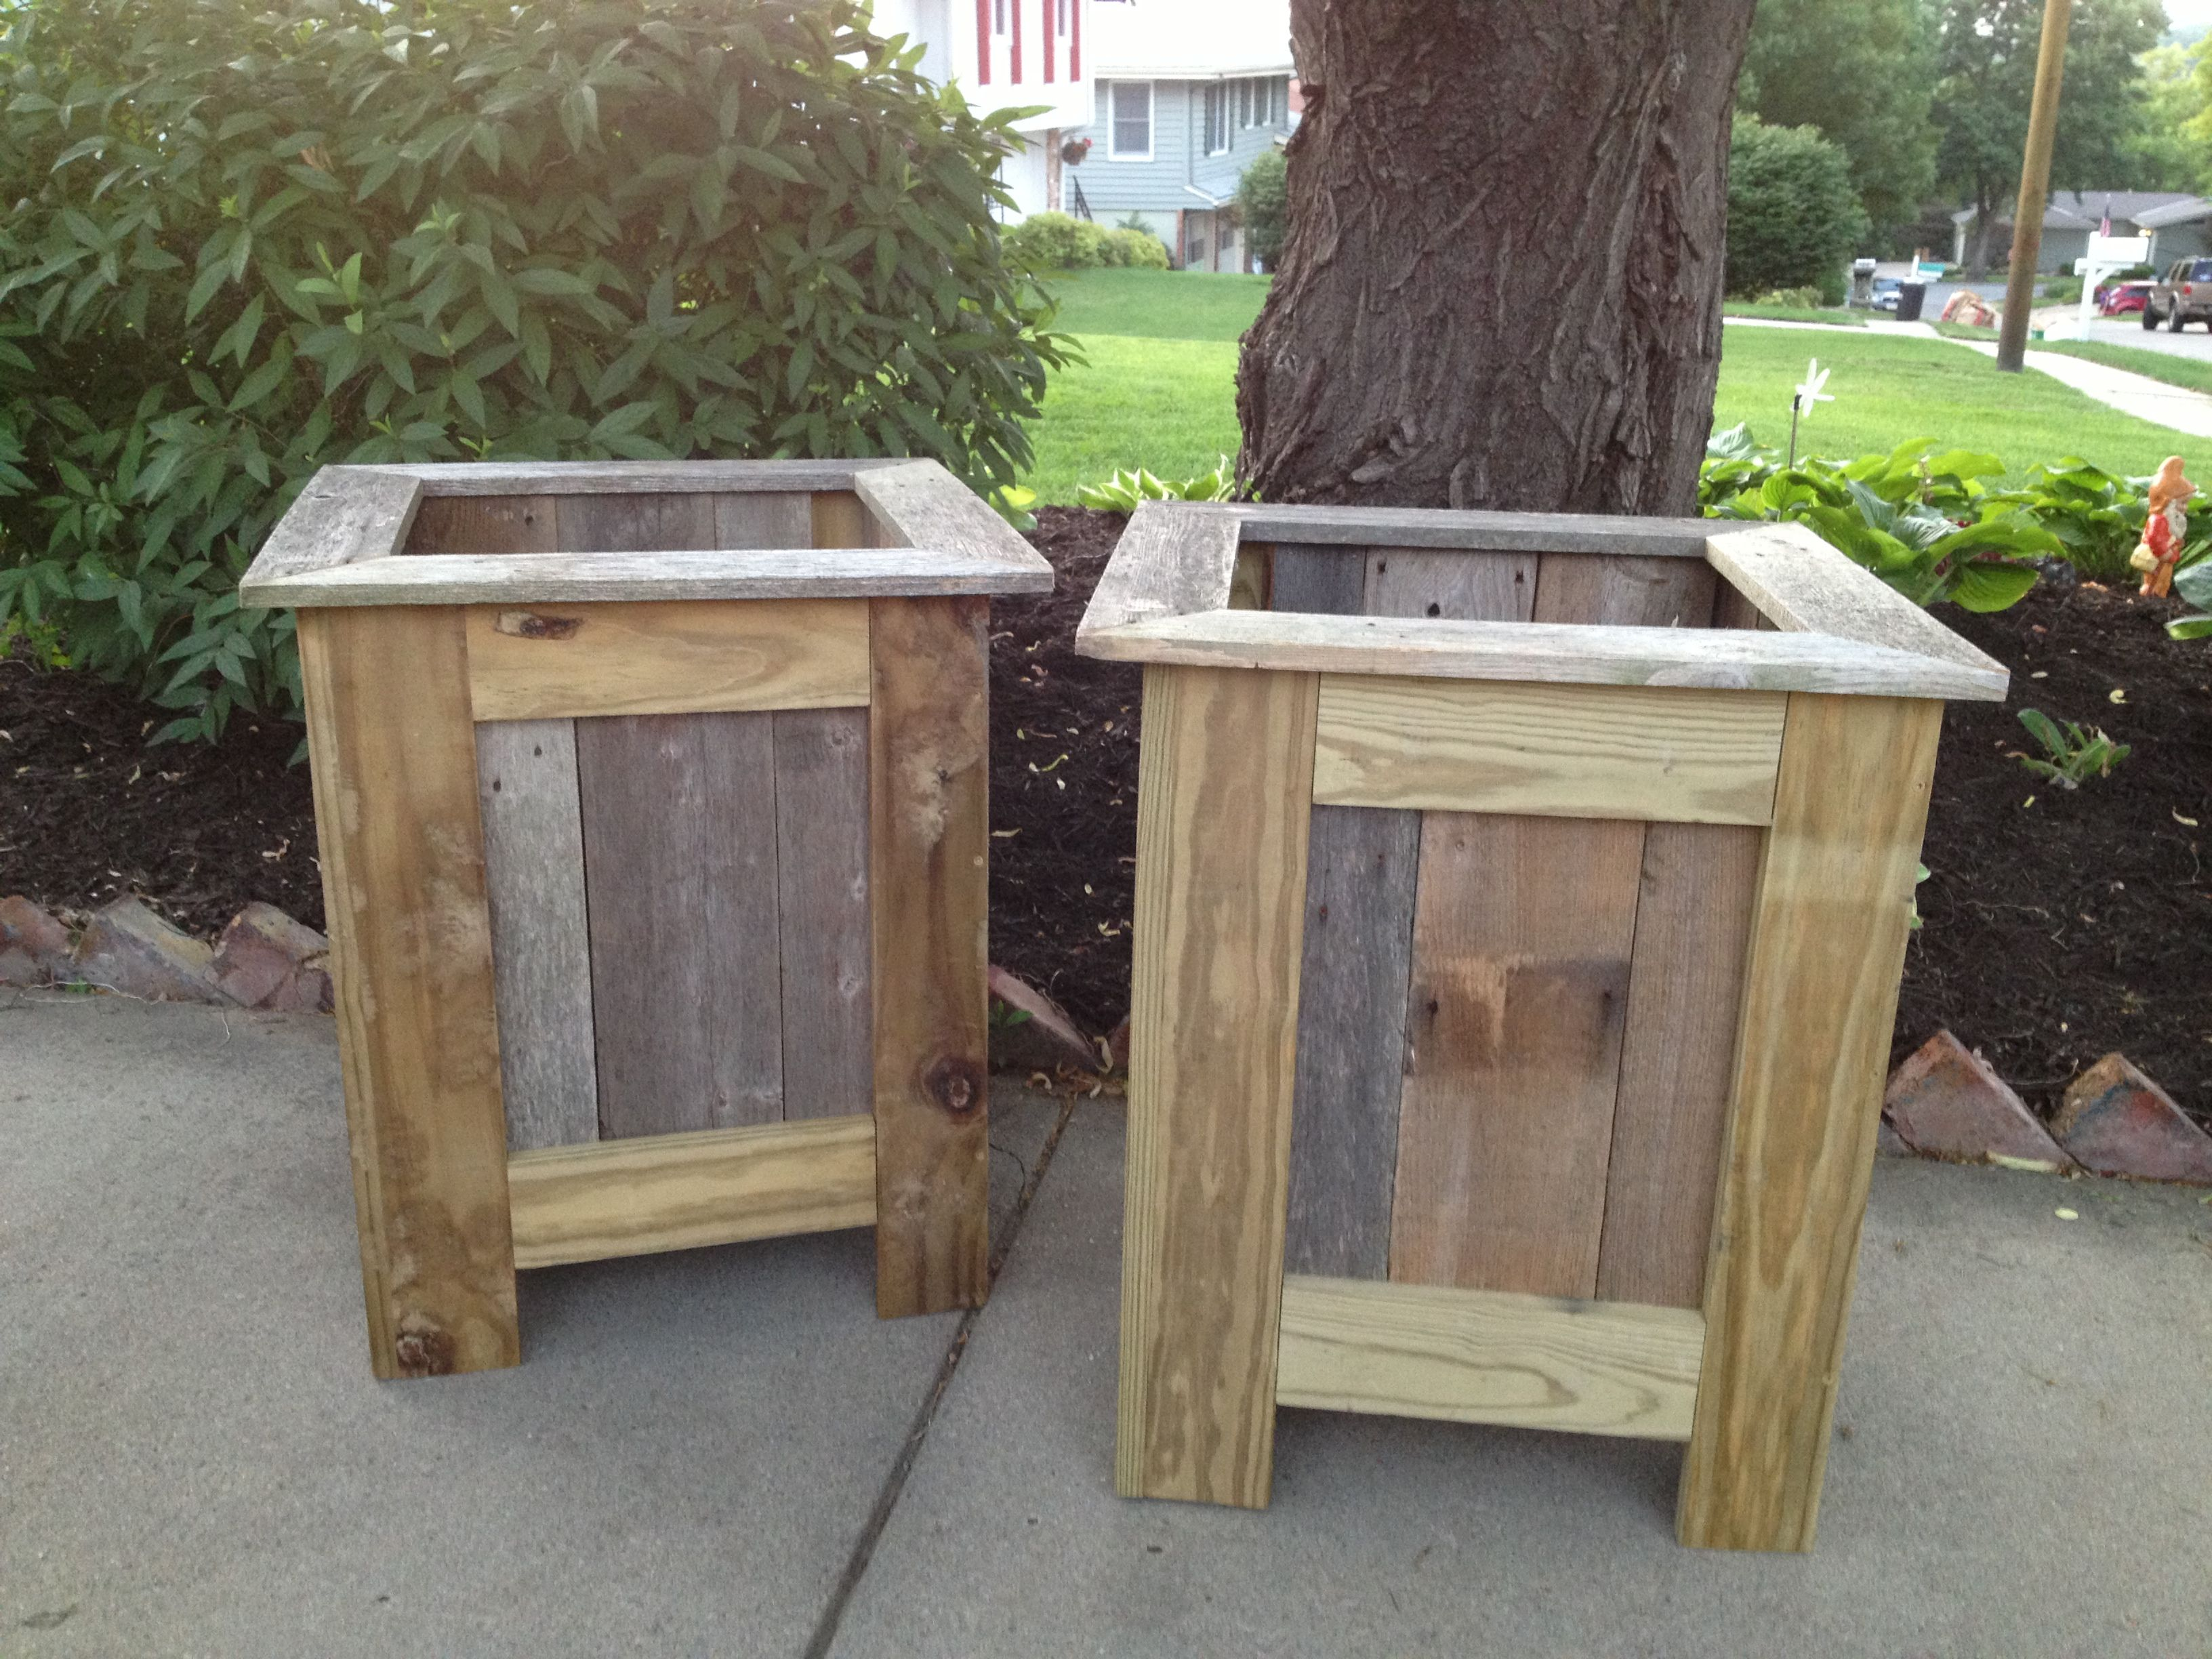 Fabulous Reclaimed Wood Planters Gallifrey Gardens